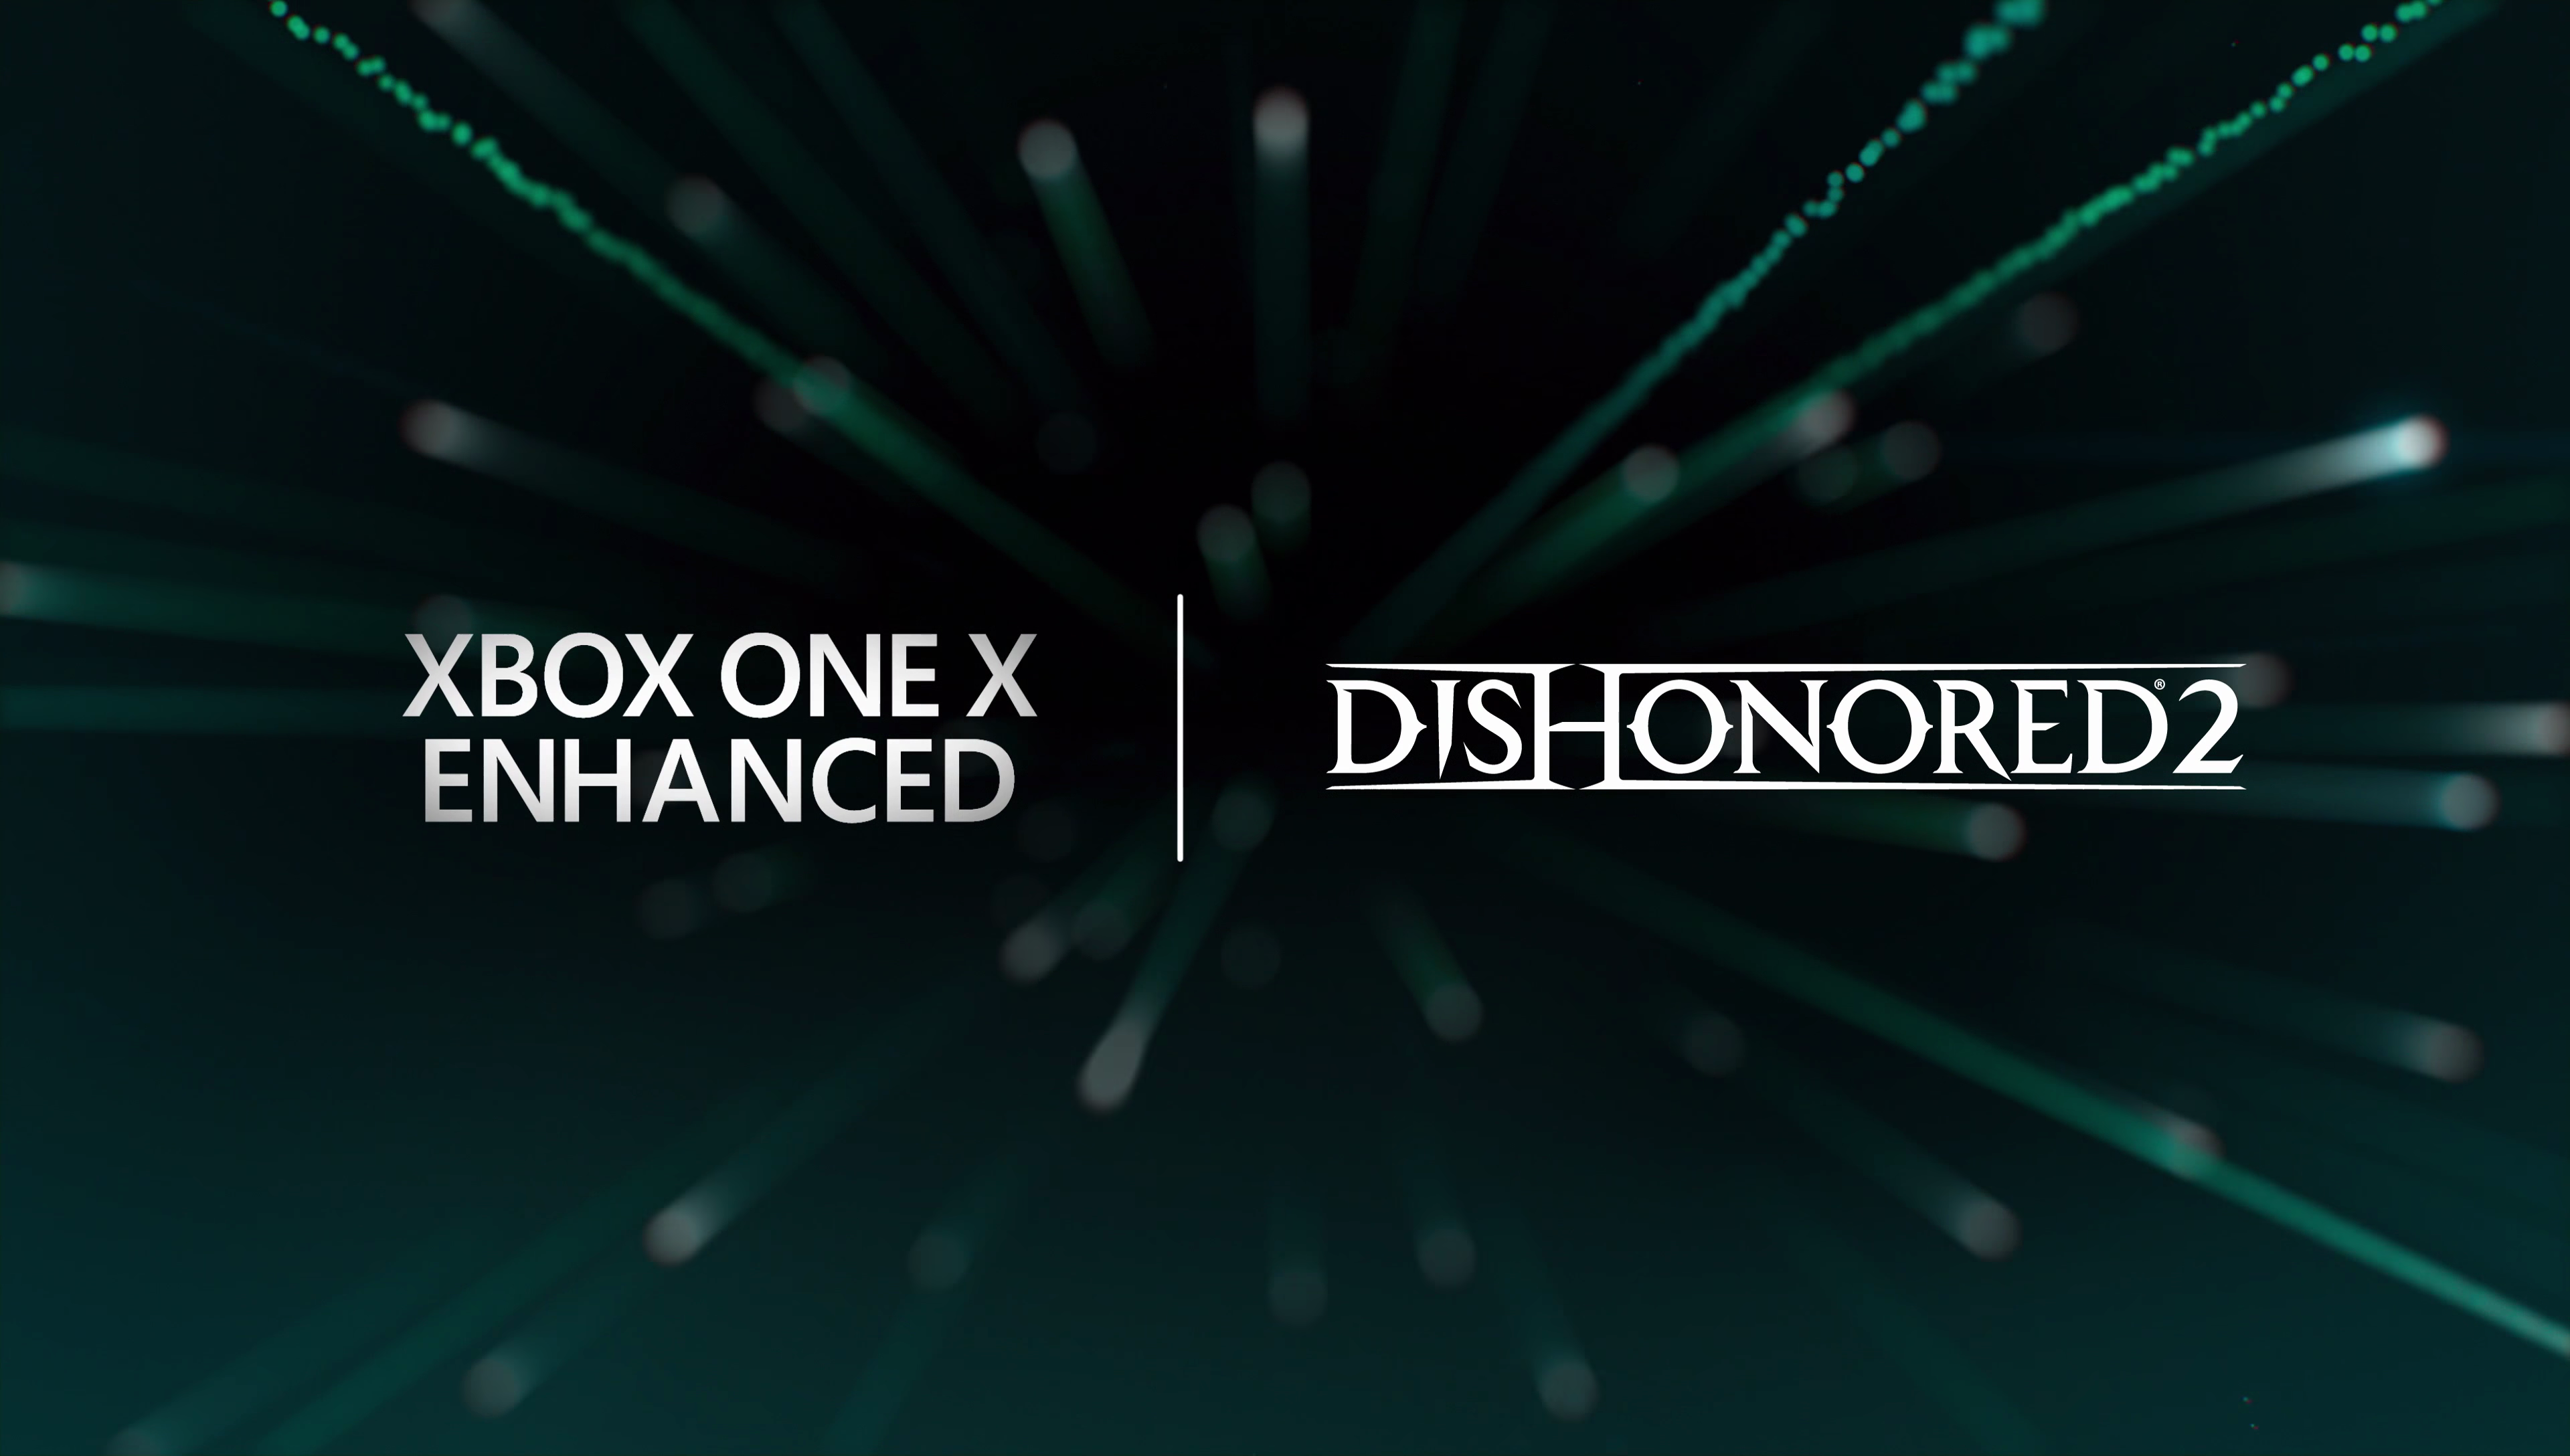 Dishonored 2 & Dishonored: Death of the Outsider - Xbox One